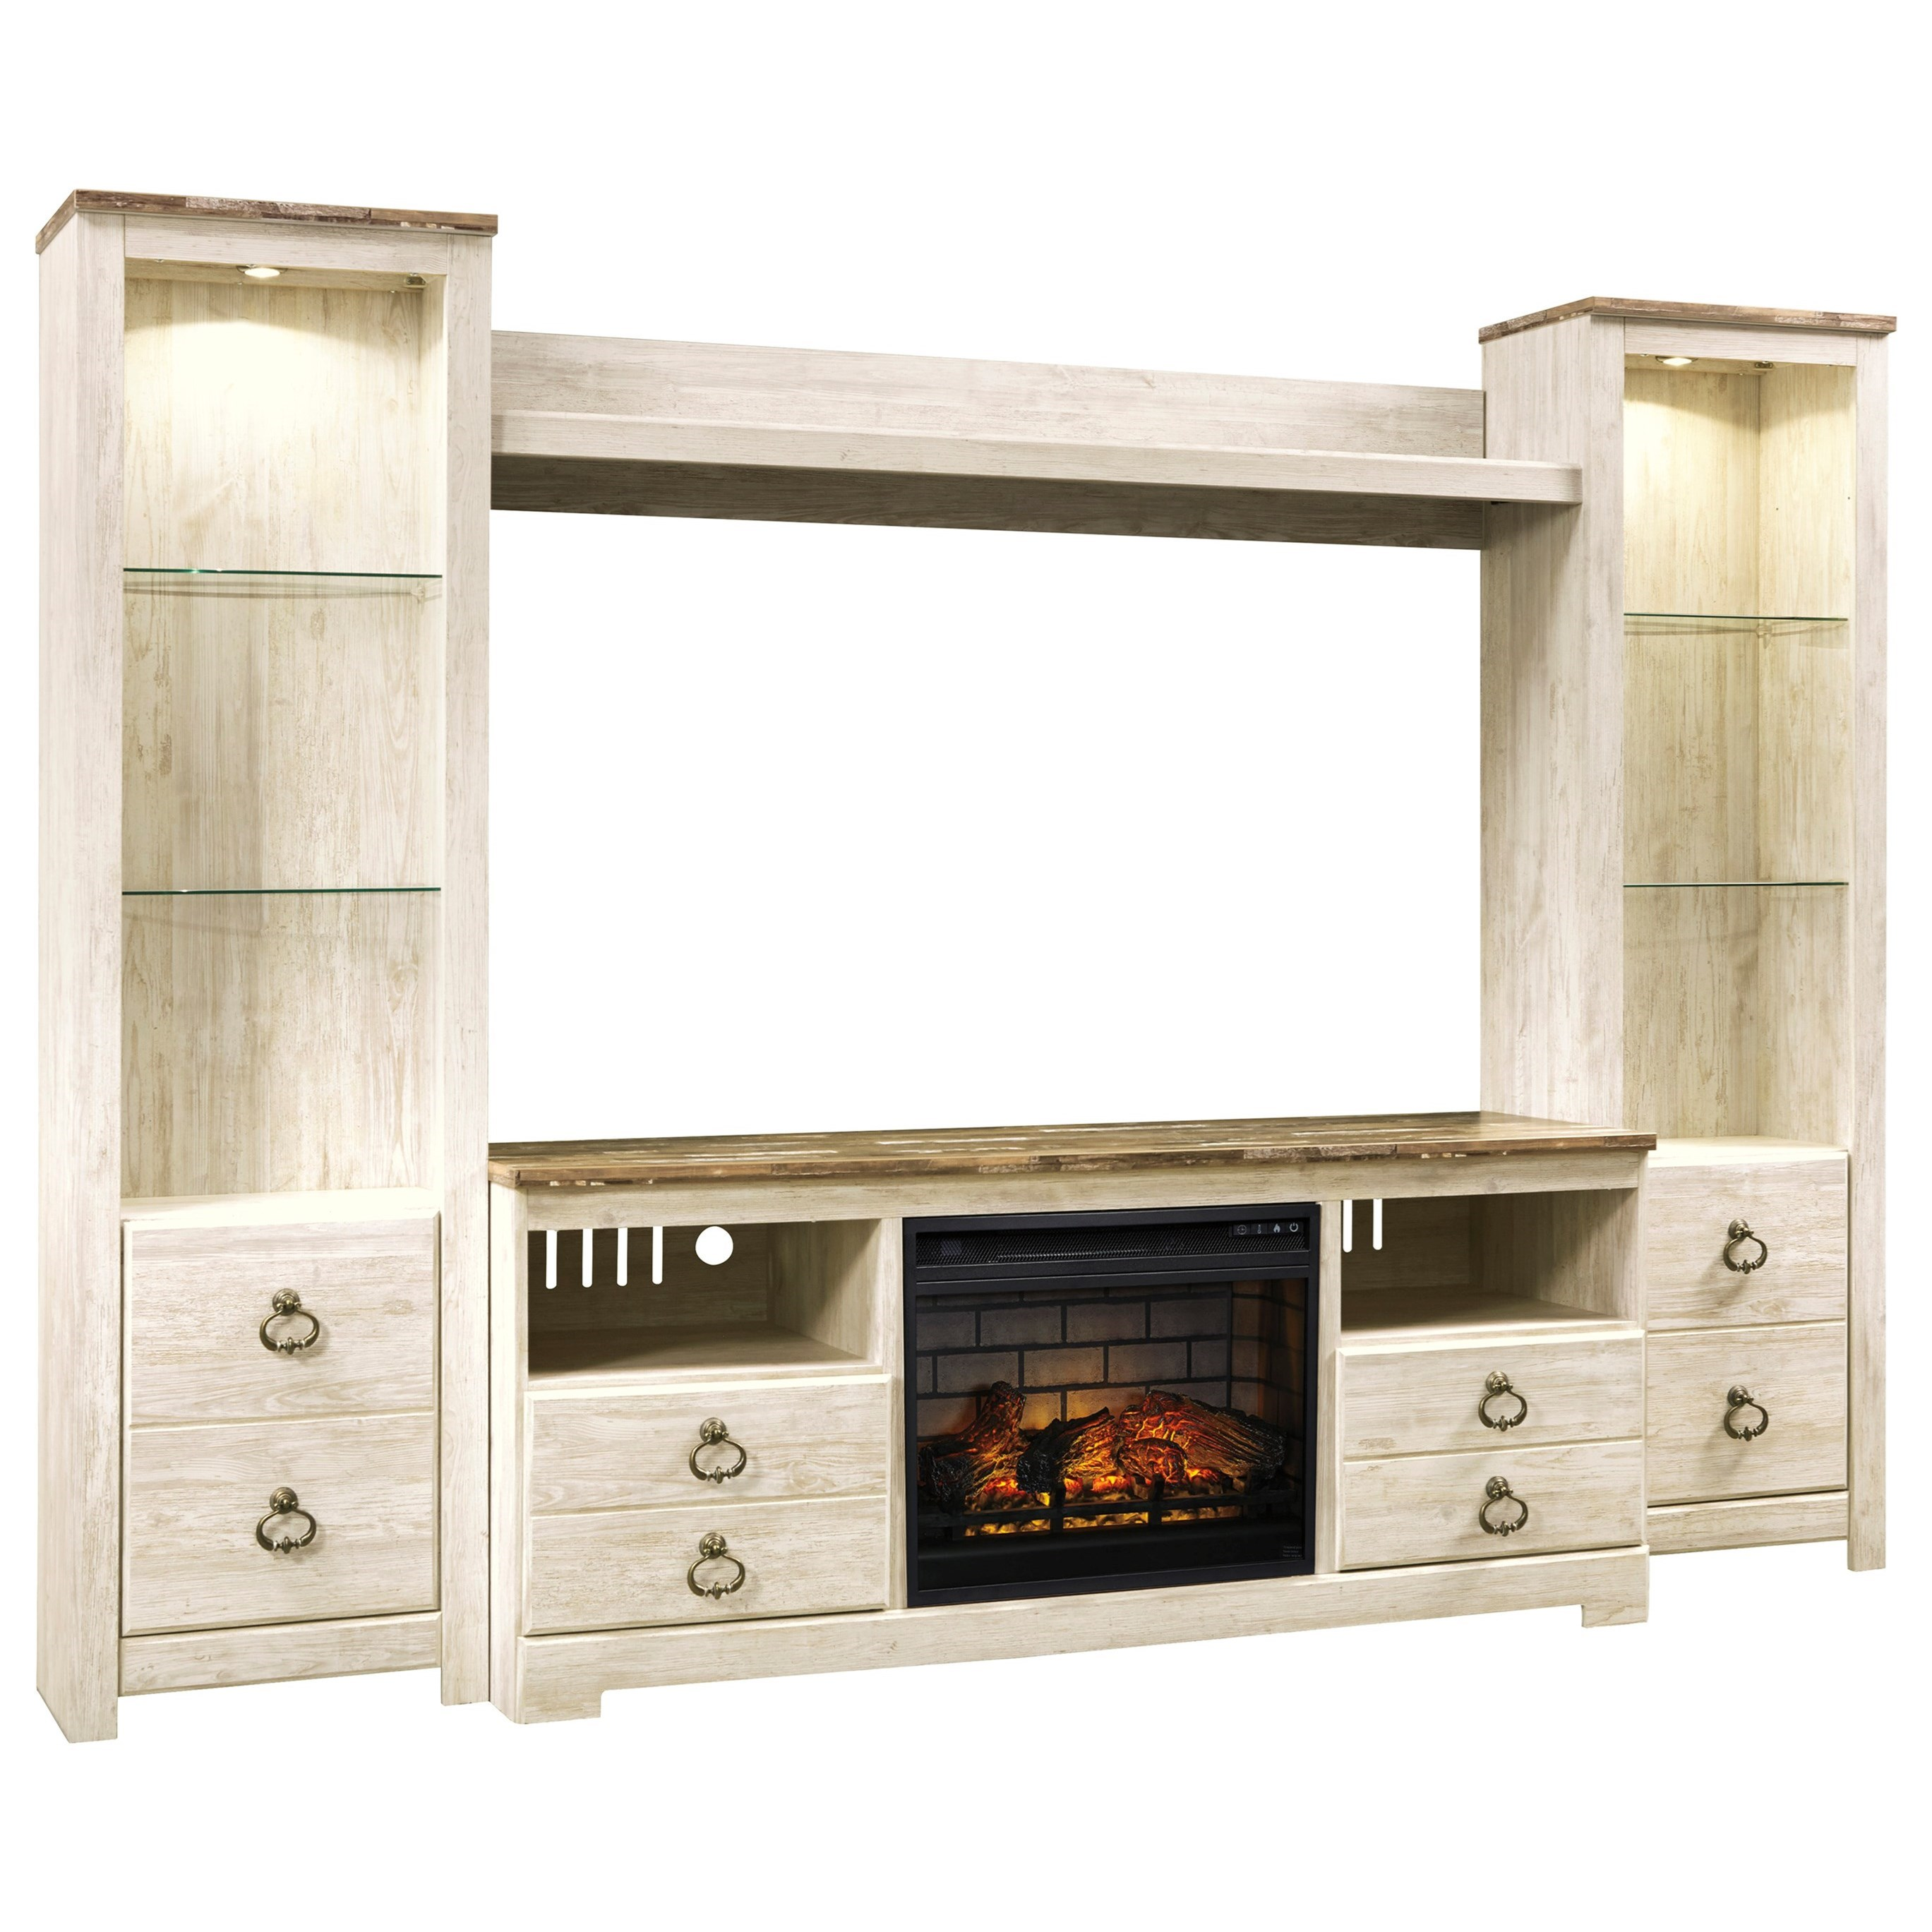 Willowton Entertainment Center with Fireplace Insert by Signature Design by Ashley at Value City Furniture